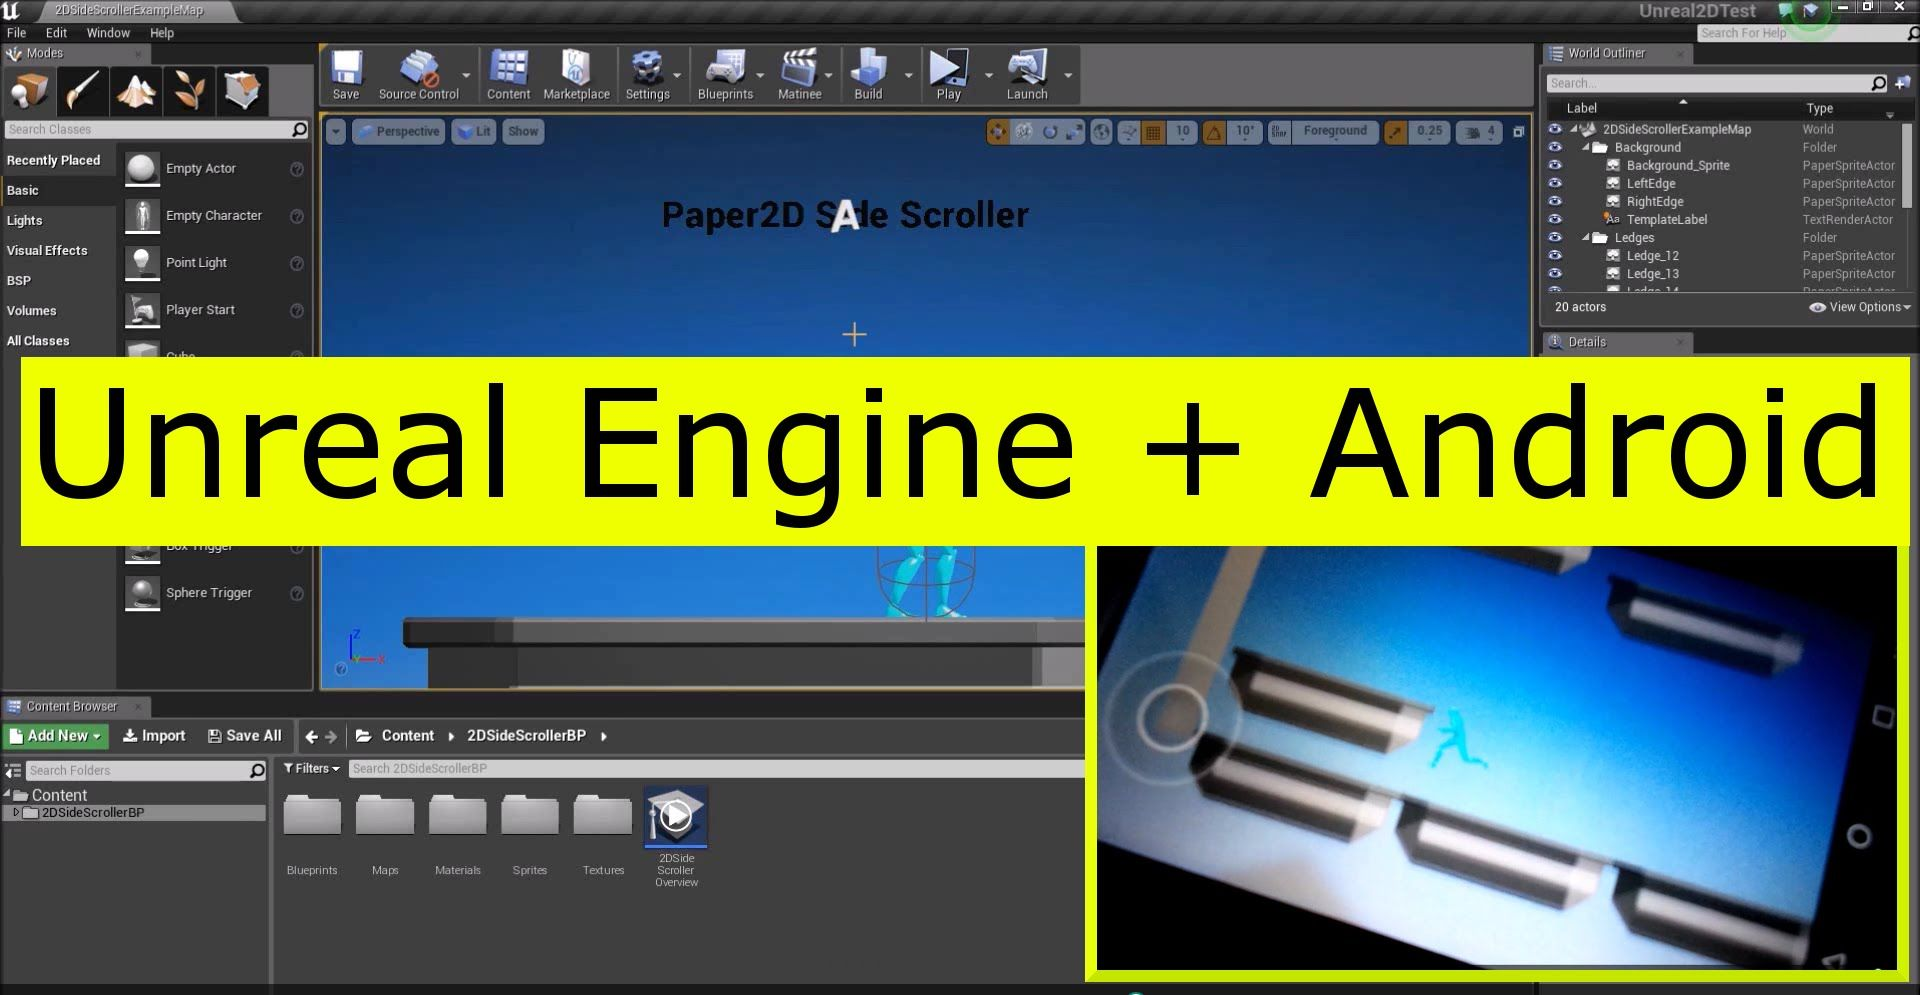 Android game development process with unreal engine 4 setup setup android environment to develop mobile games with unreal engine this video tutorial shows how to install android sdk android ndk jdk etc baditri Choice Image